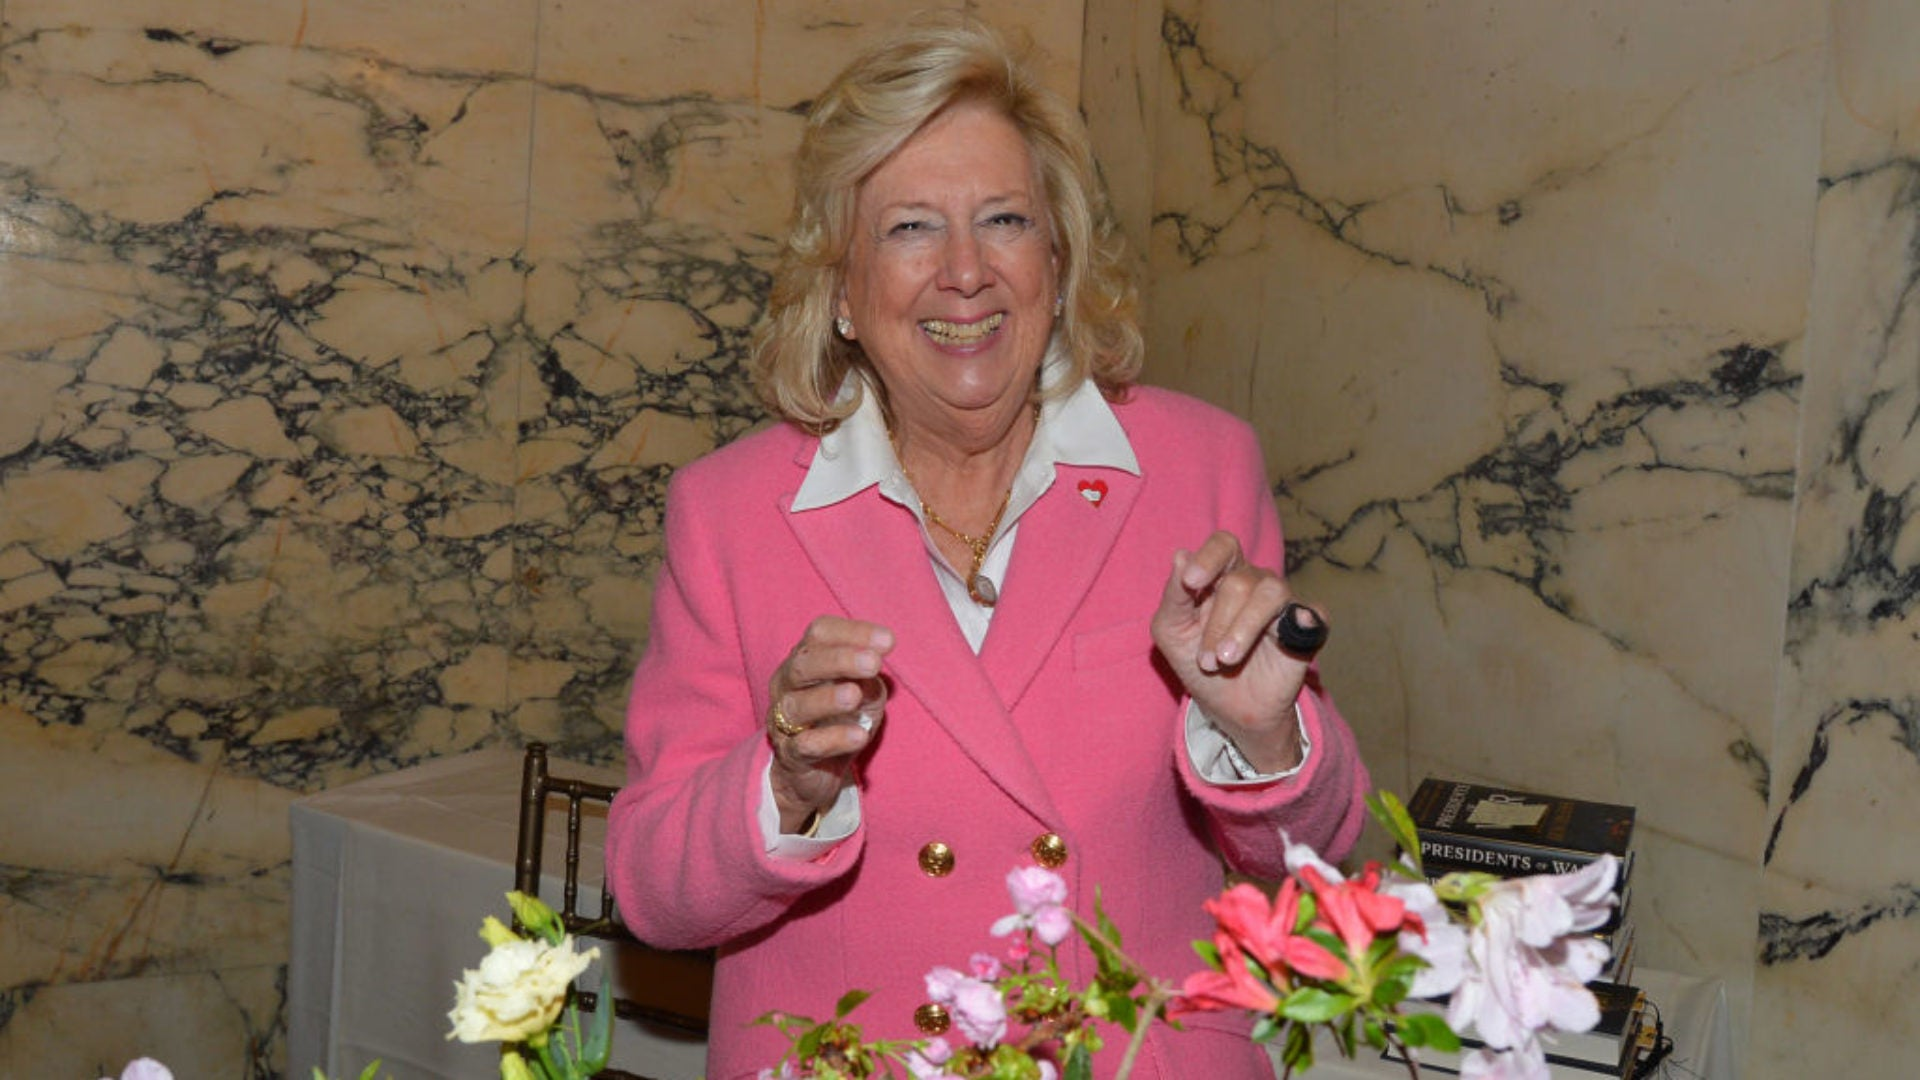 Former Prosecutor Linda Fairstein Chased Off Social Media Thanks To 'When They See Us'